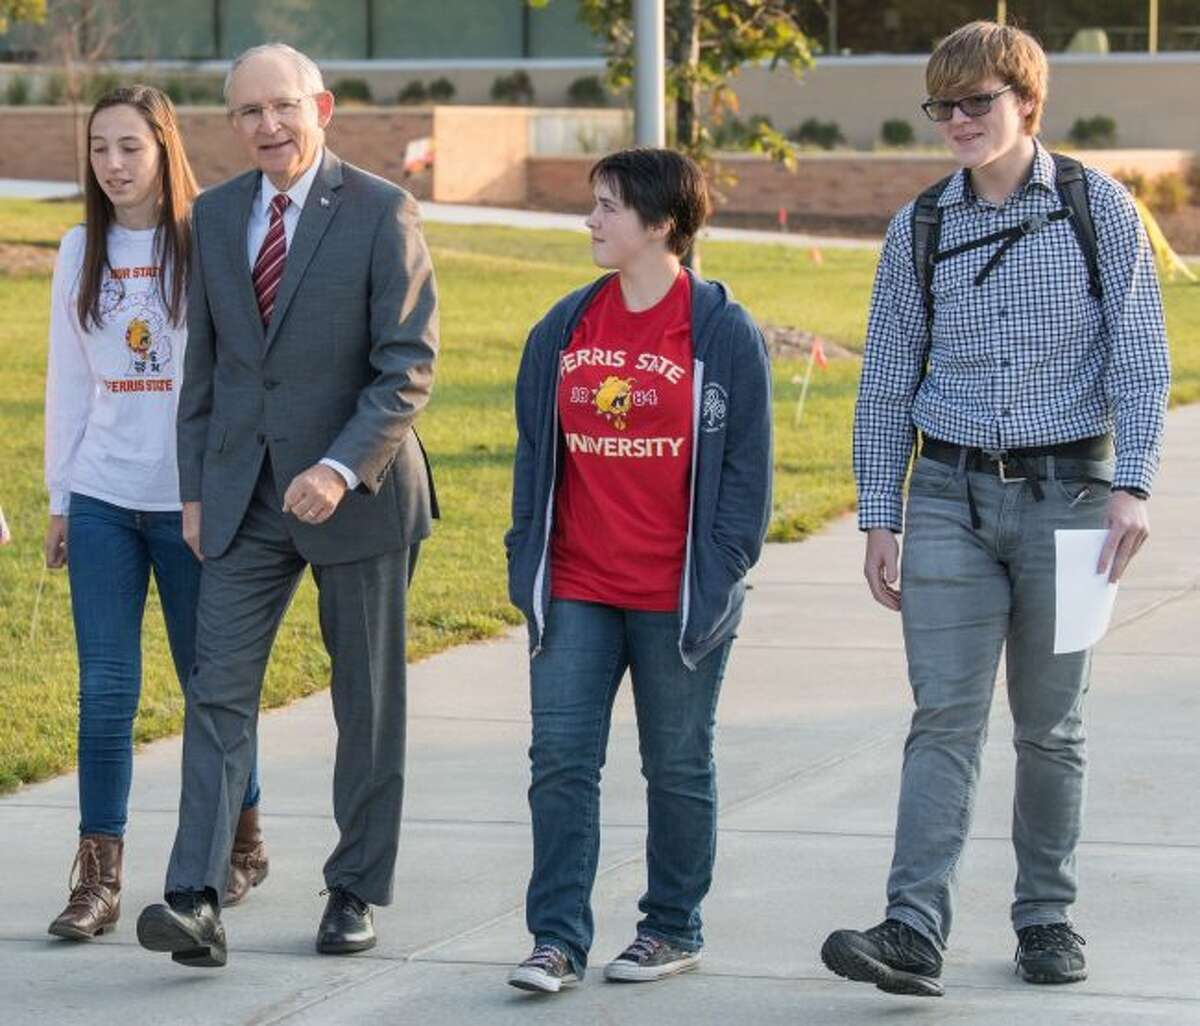 In a previous stroll across Ferris State University campus, President David Eisler (second from left) spoke with students. According to Eisler, there are more freshmen on campus this year and the student retention rate has increased. (Courtesy photo)